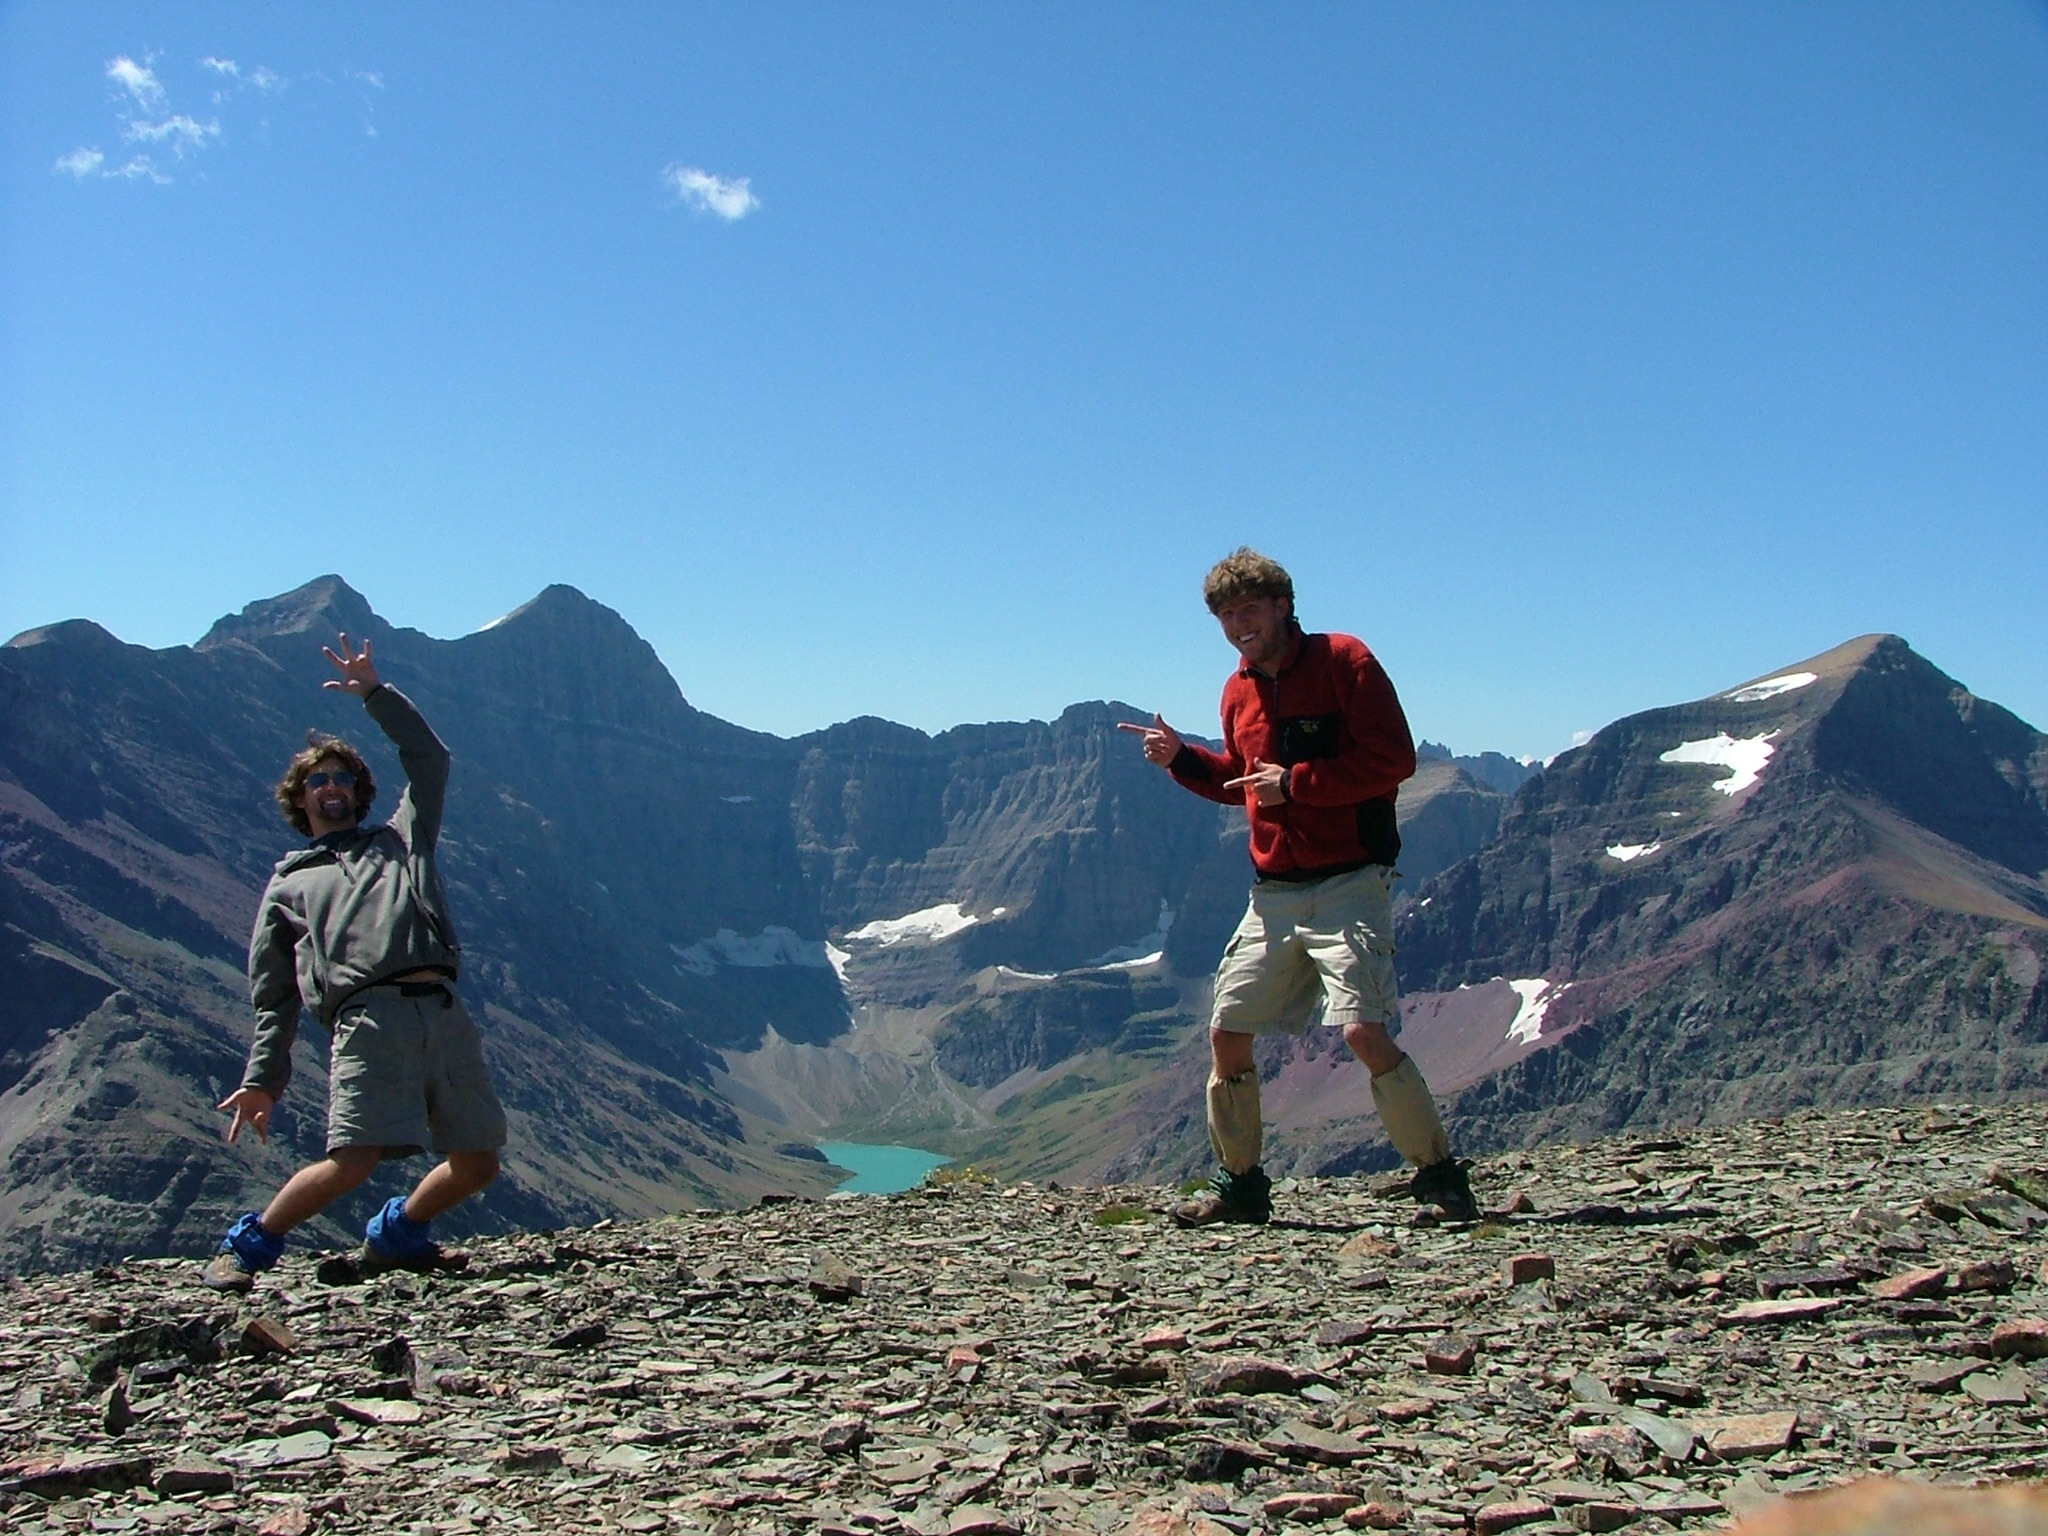 """A pair of callow young mountaineers encourage you to """"Rock On"""" while following the long, long ridge from Mt. Wynn to Mt. Siyeh in the distance. Cracker Lake peaks up at the base of Siyeh in the middle of the photo."""